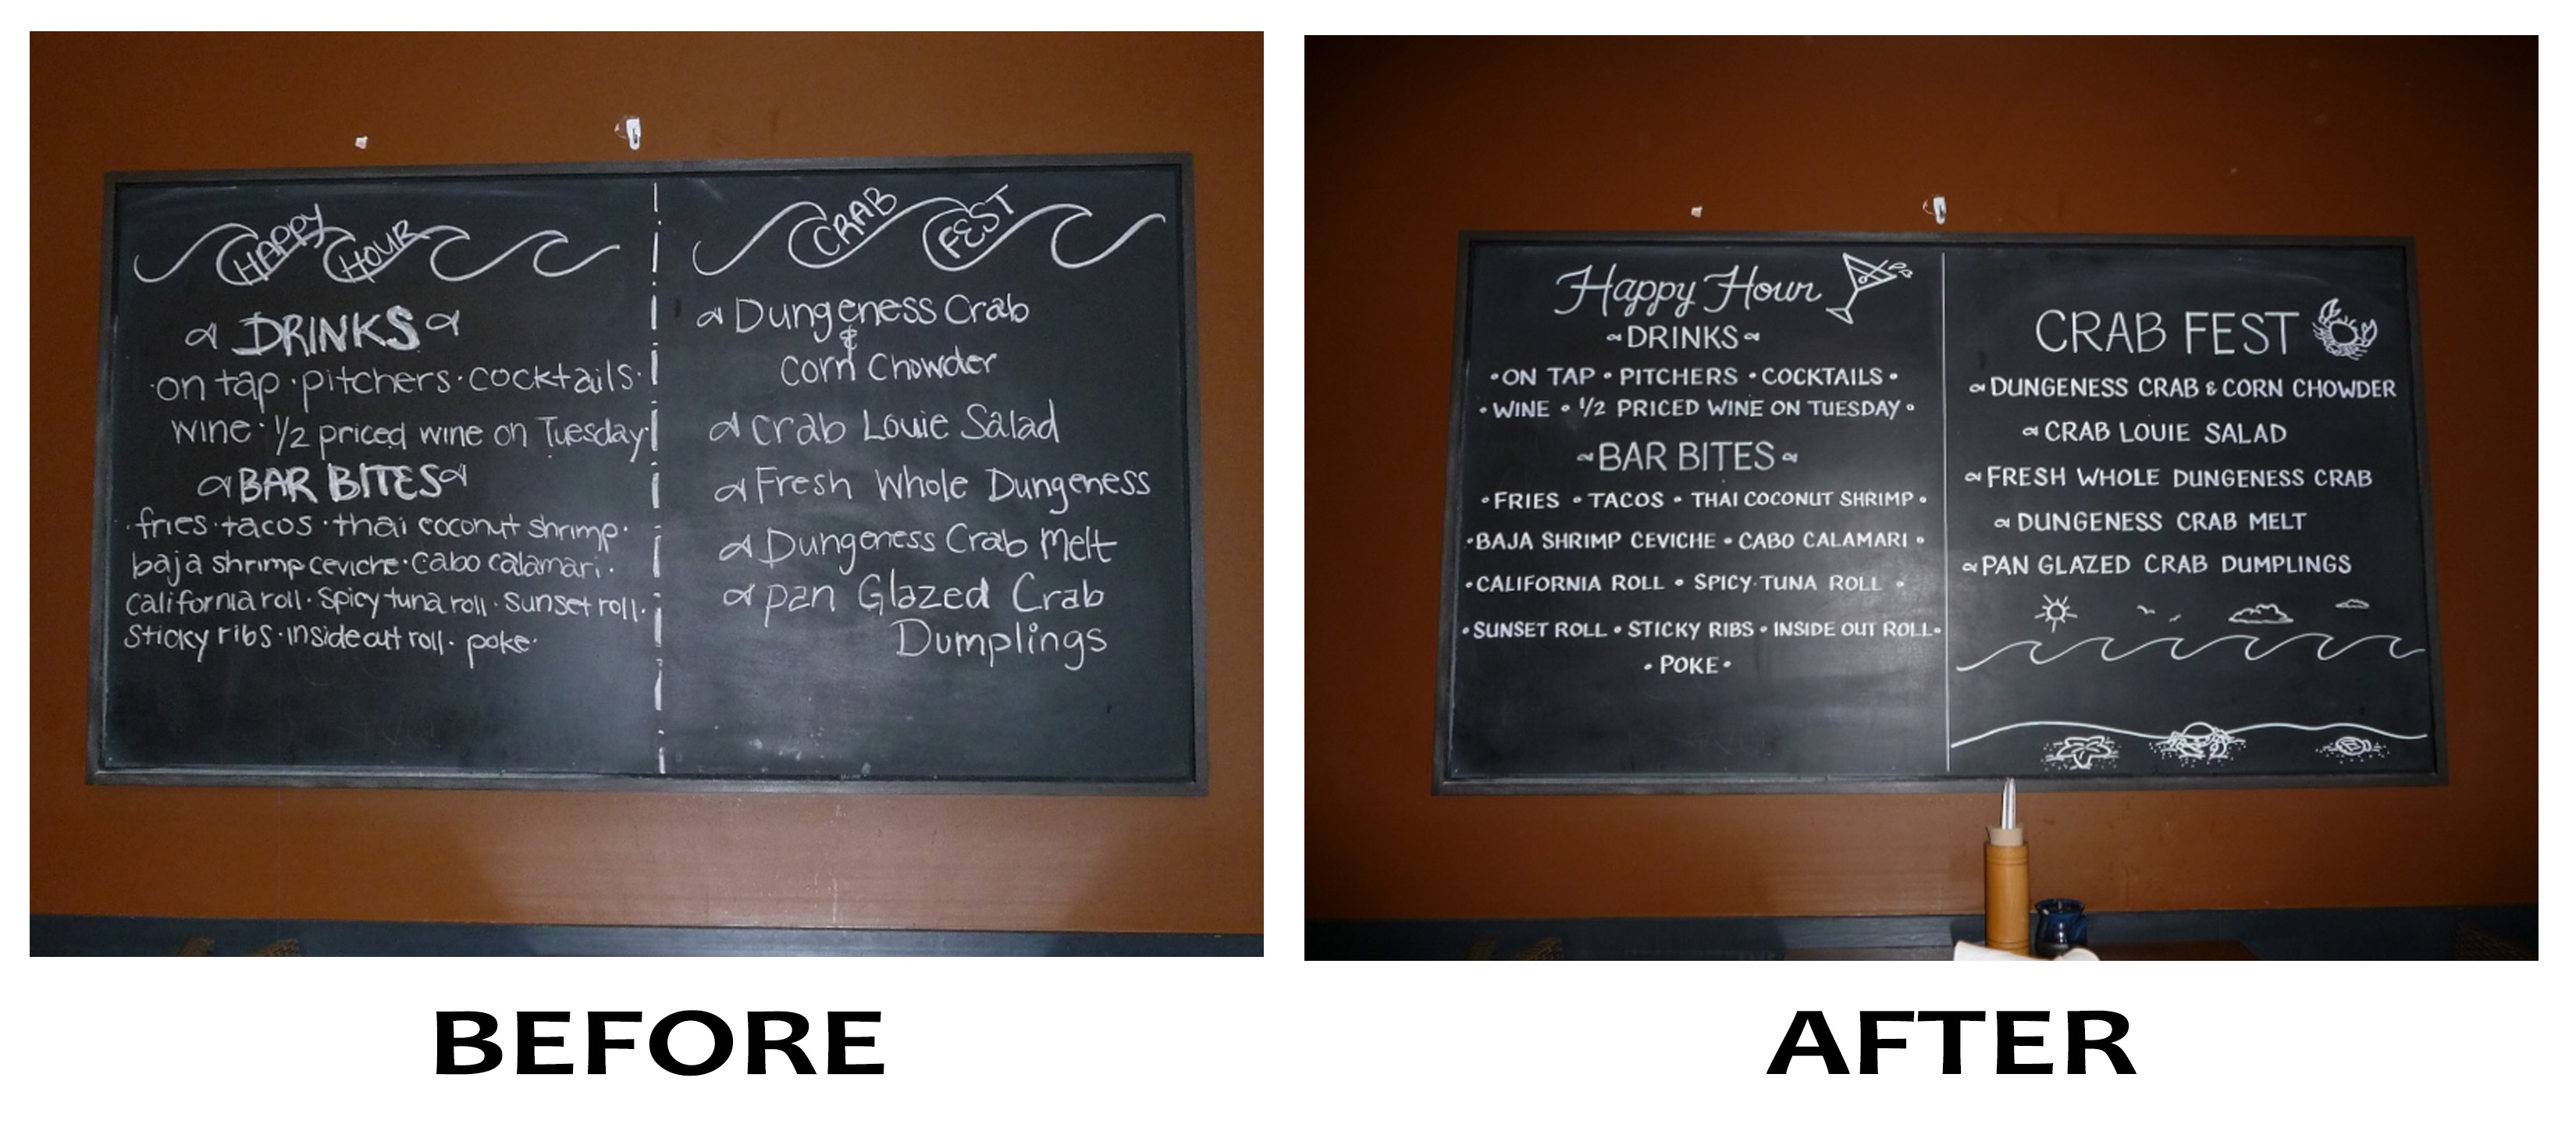 BeforeAfter Drink & Crab Fest Board